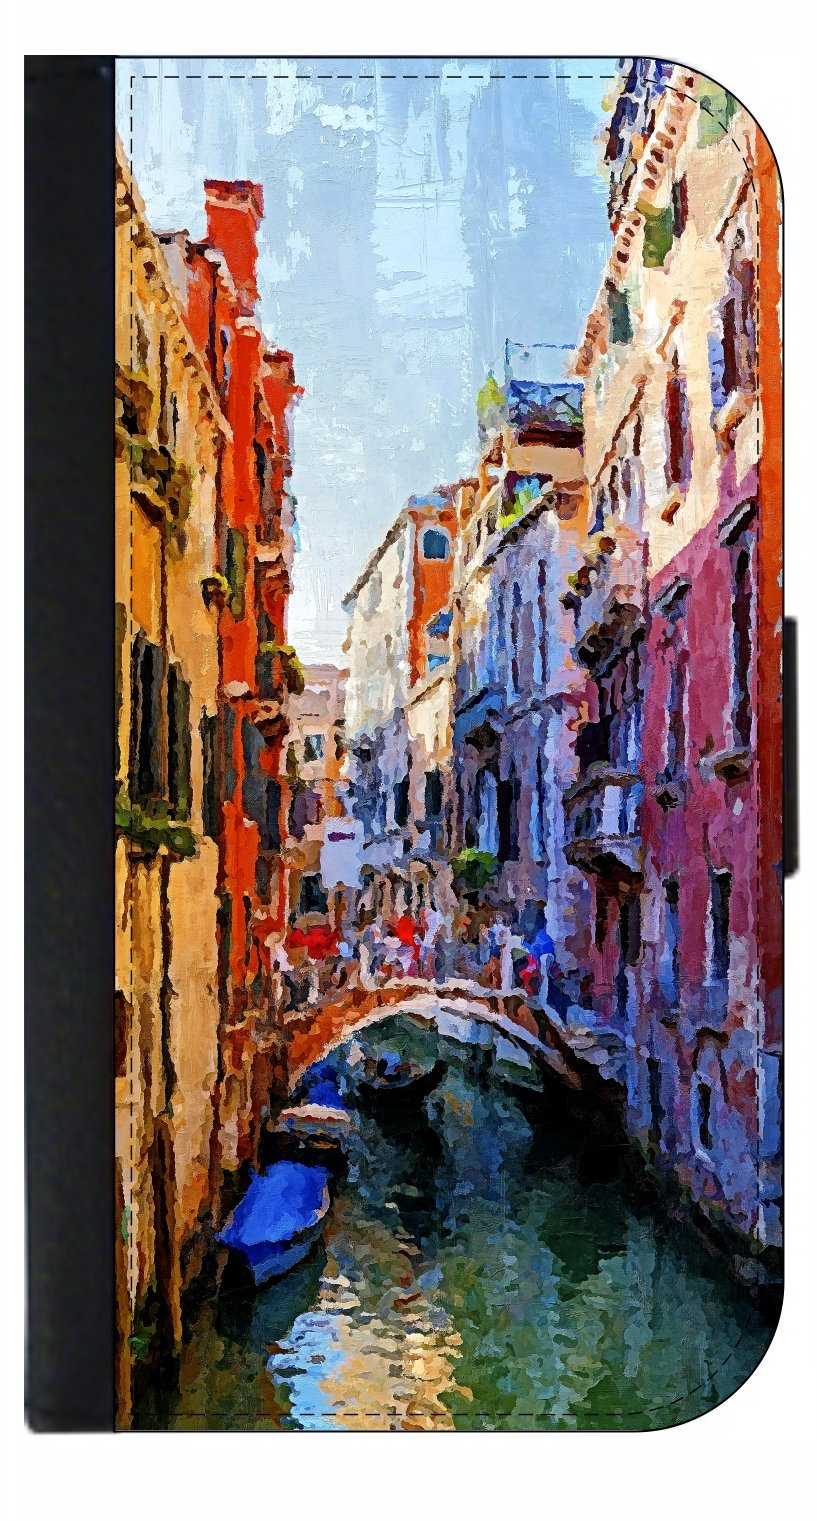 Venice Painting - Passport Cover / Card Holder for Travel